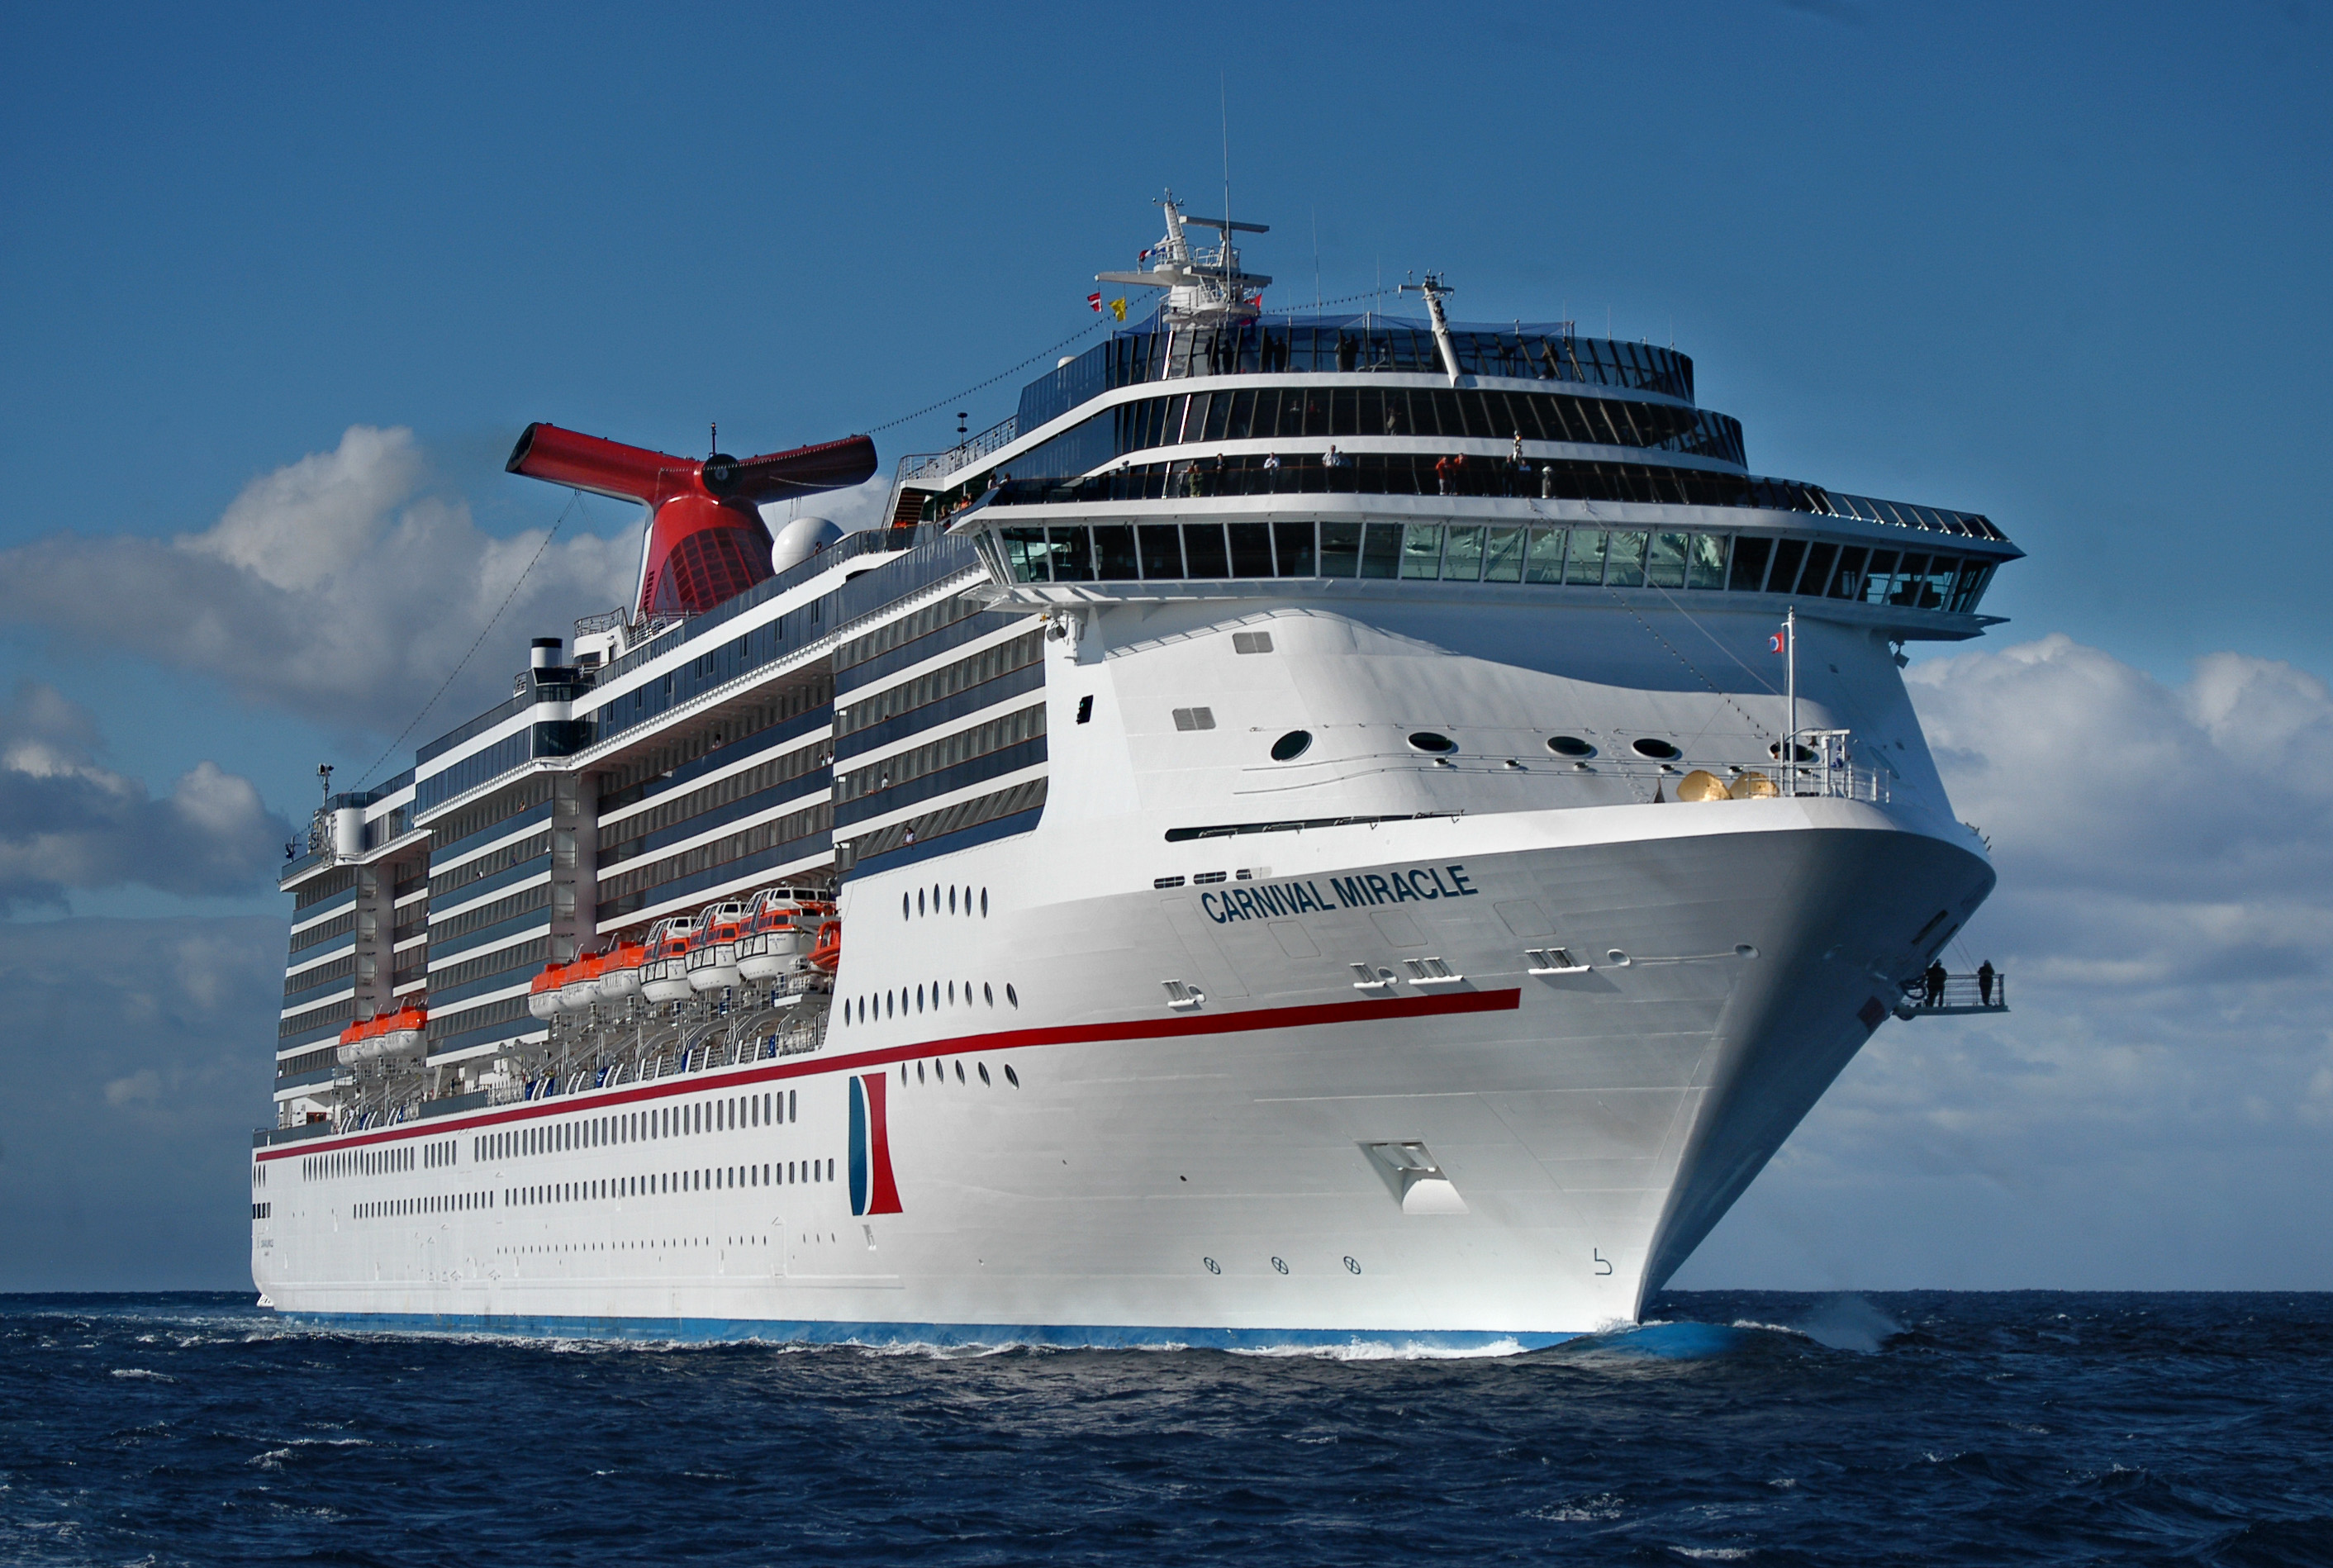 Carnival Cruise Line To Offer Seasonal Program Of Three- to 15-Day Voyages From San Diego Aboard Carnival Miracle